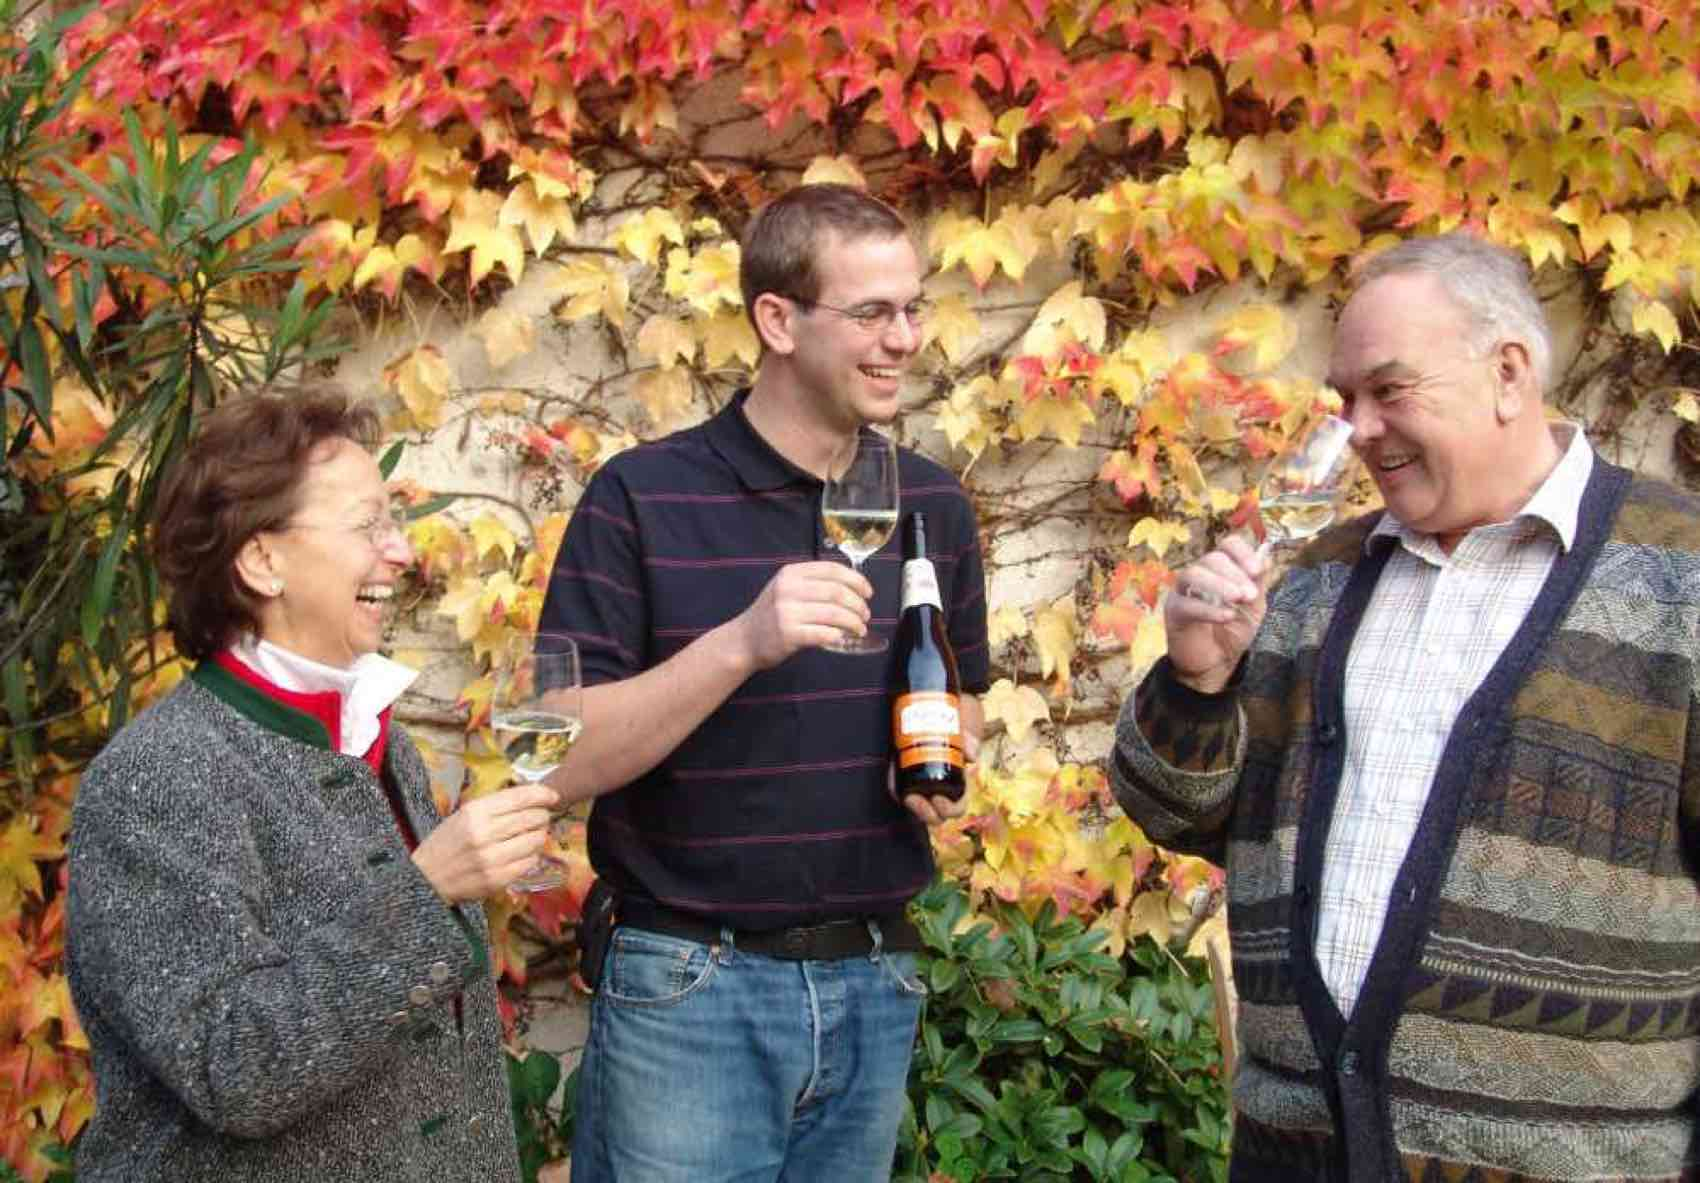 The Family Saahs testing their wine made at Nikolaihof in Wachau